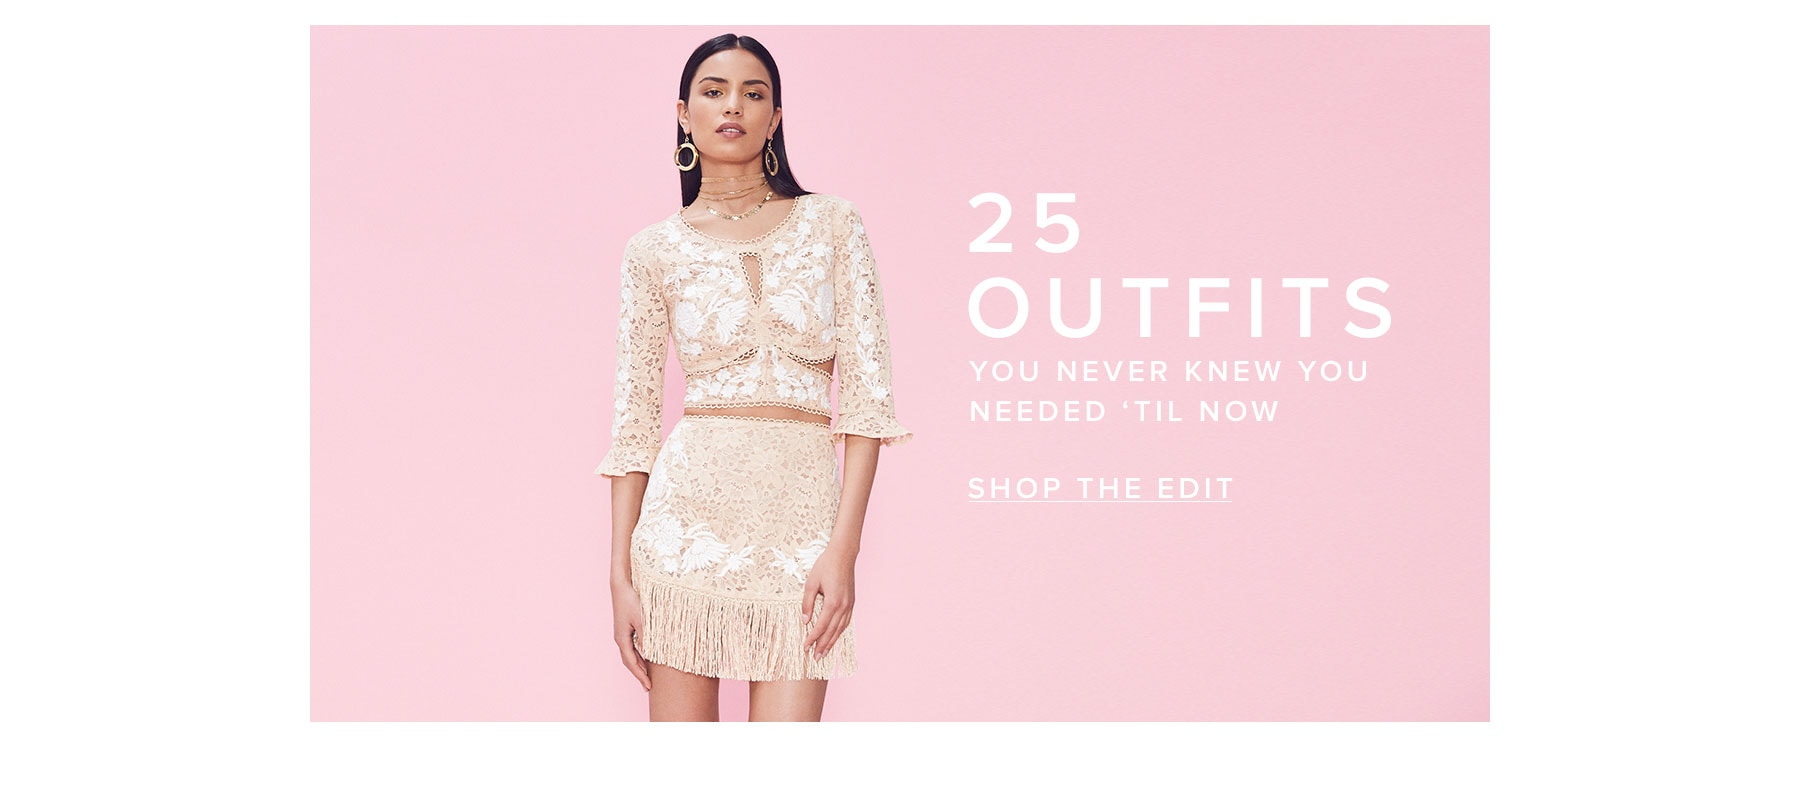 25 outfits you never knew you needed until now. Shop the edit.